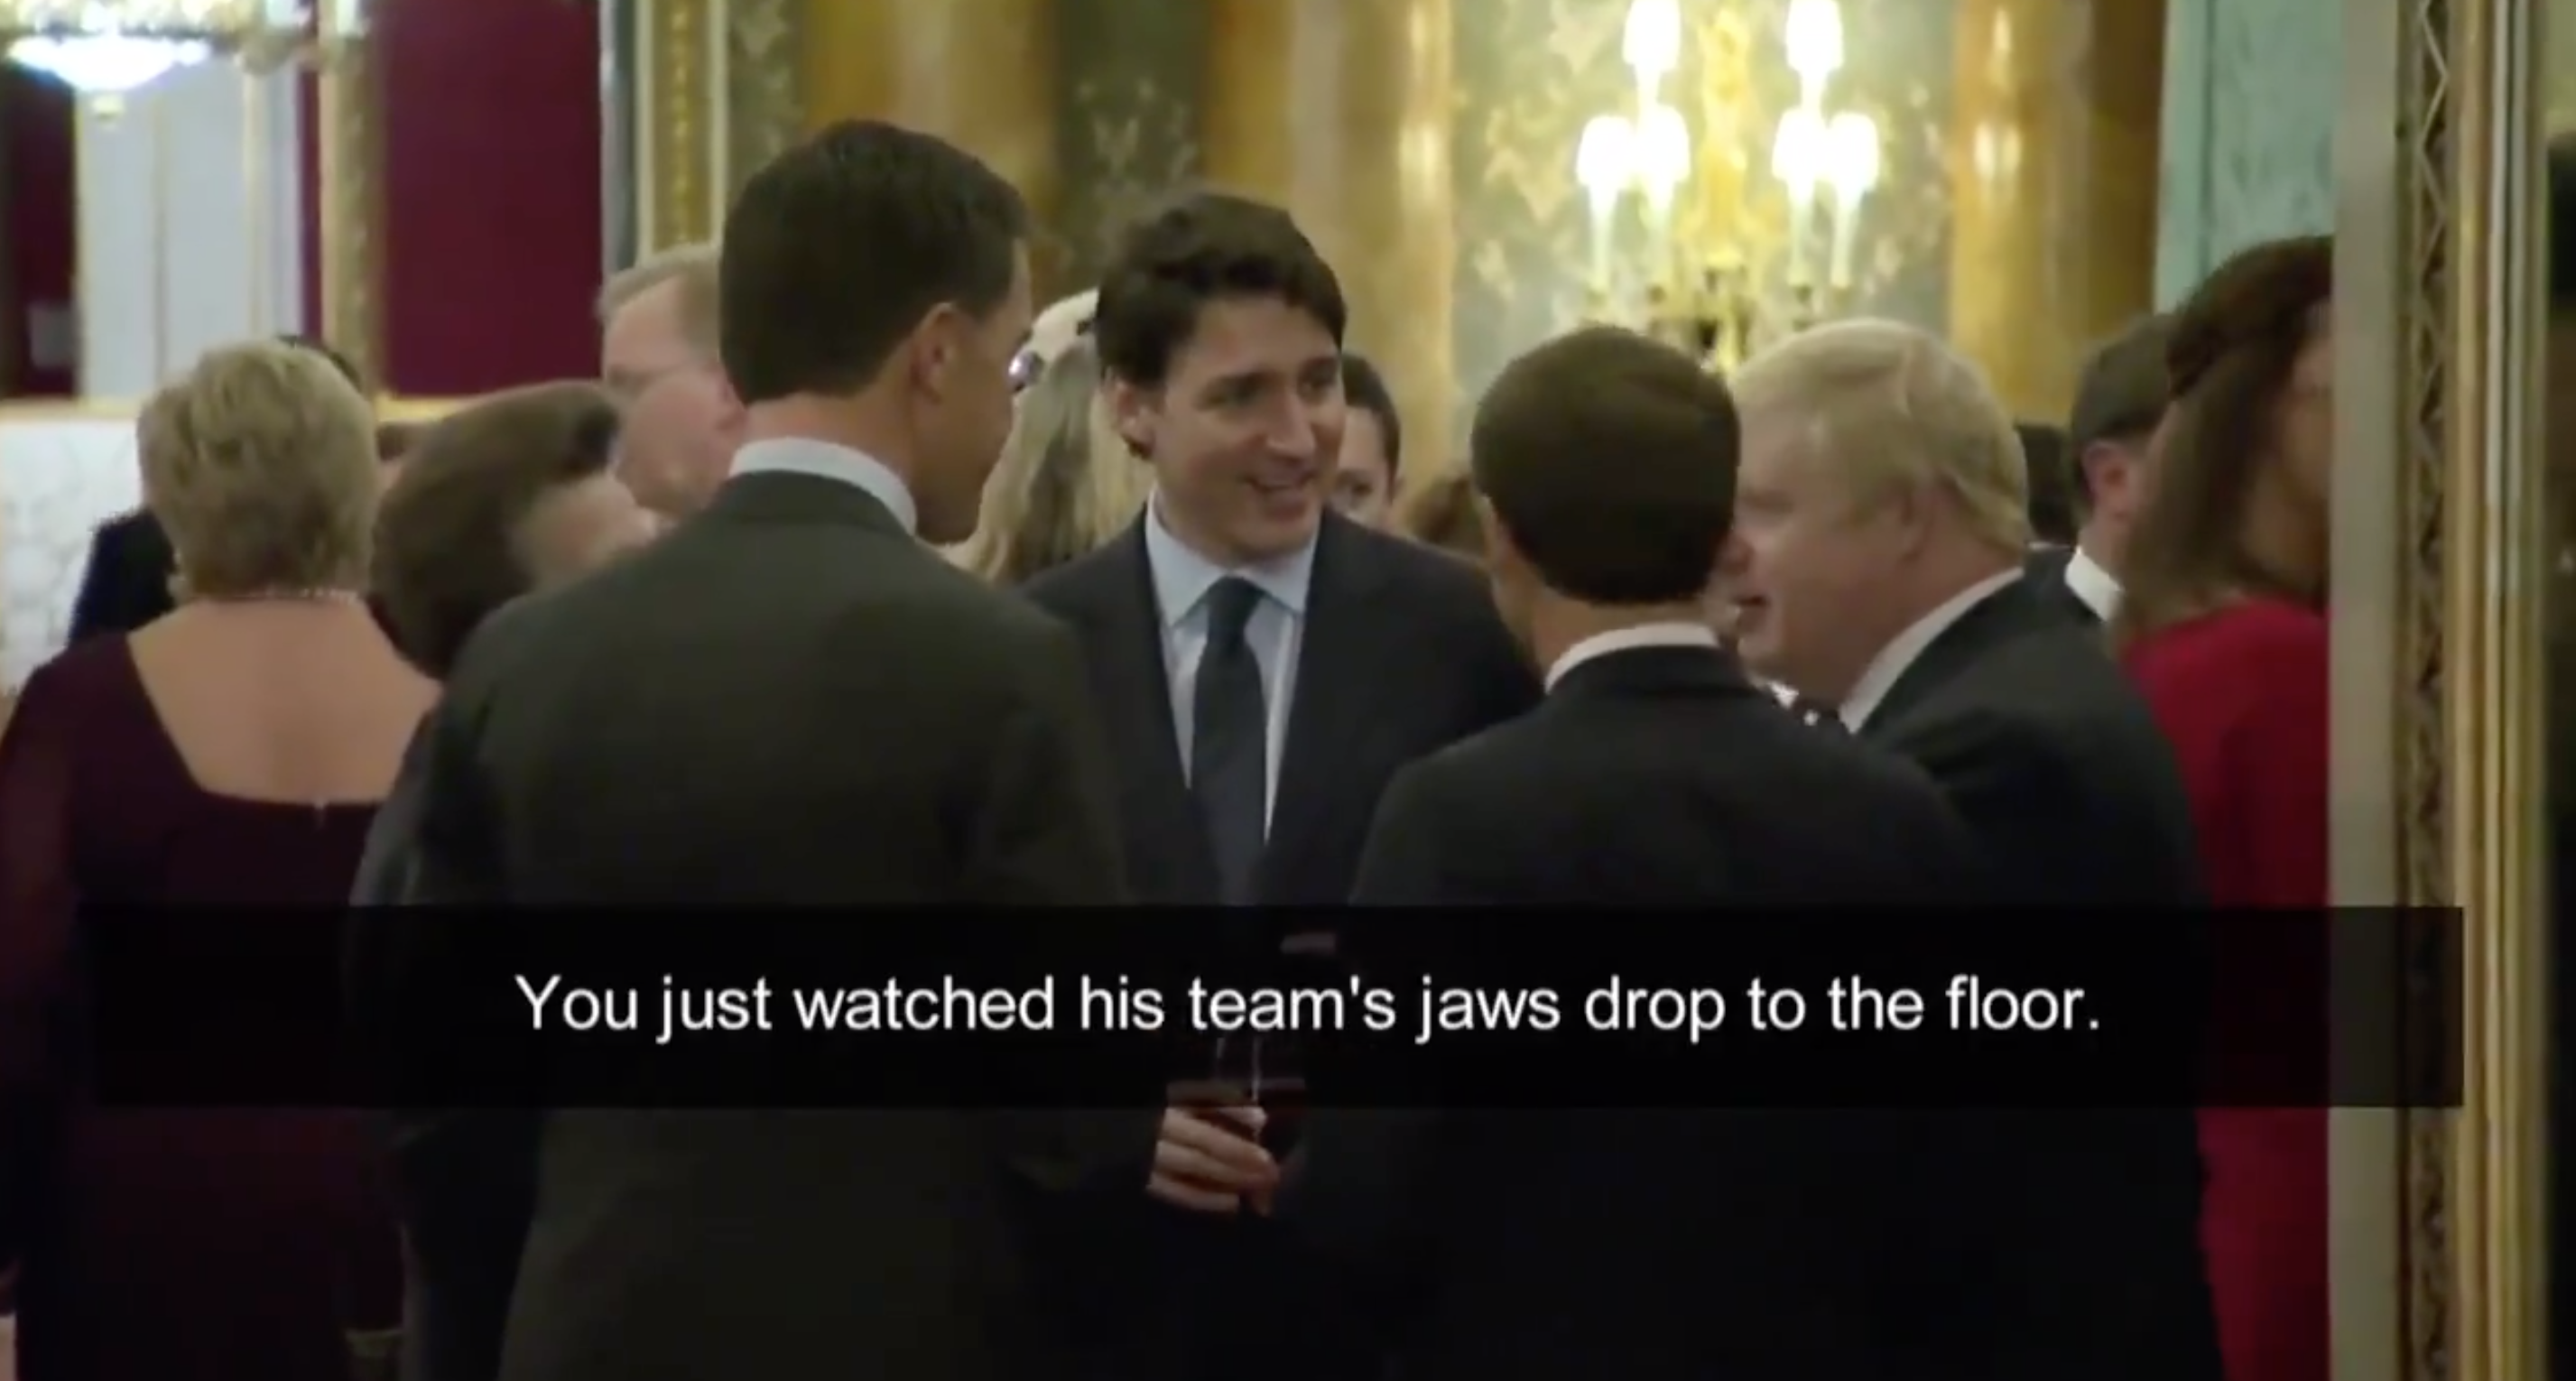 Westlake Legal Group Screen-Shot-2019-12-03-at-11.53.51-PM Trudeau, Johnson, Macron appear to be mocking Trump in surfaced video from NATO summit Joseph Wulfsohn fox-news/tech/companies/twitter fox-news/politics/foreign-policy/alliances fox-news/person/justin-trudeau fox-news/person/emmanuel-macron fox-news/person/donald-trump fox-news/person/boris-johnson fox-news/media fox news fnc/media fnc article 1e2ea33c-6a90-5ac1-a1b4-8b49e9c876dc